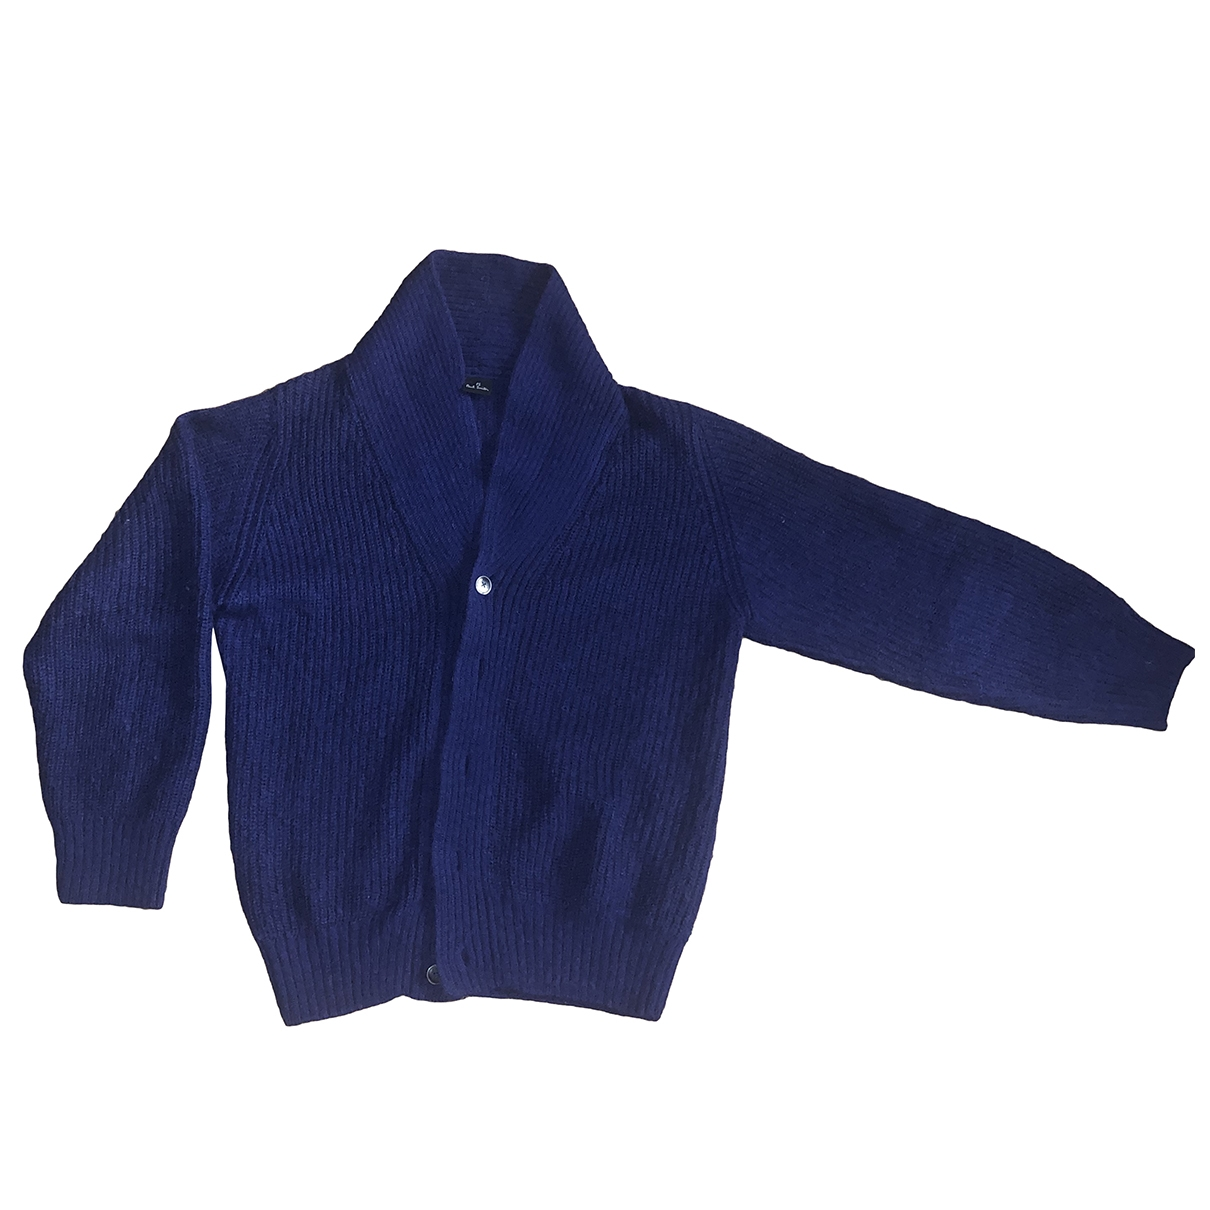 Paul Smith \N Blue Wool Knitwear & Sweatshirts for Men L International